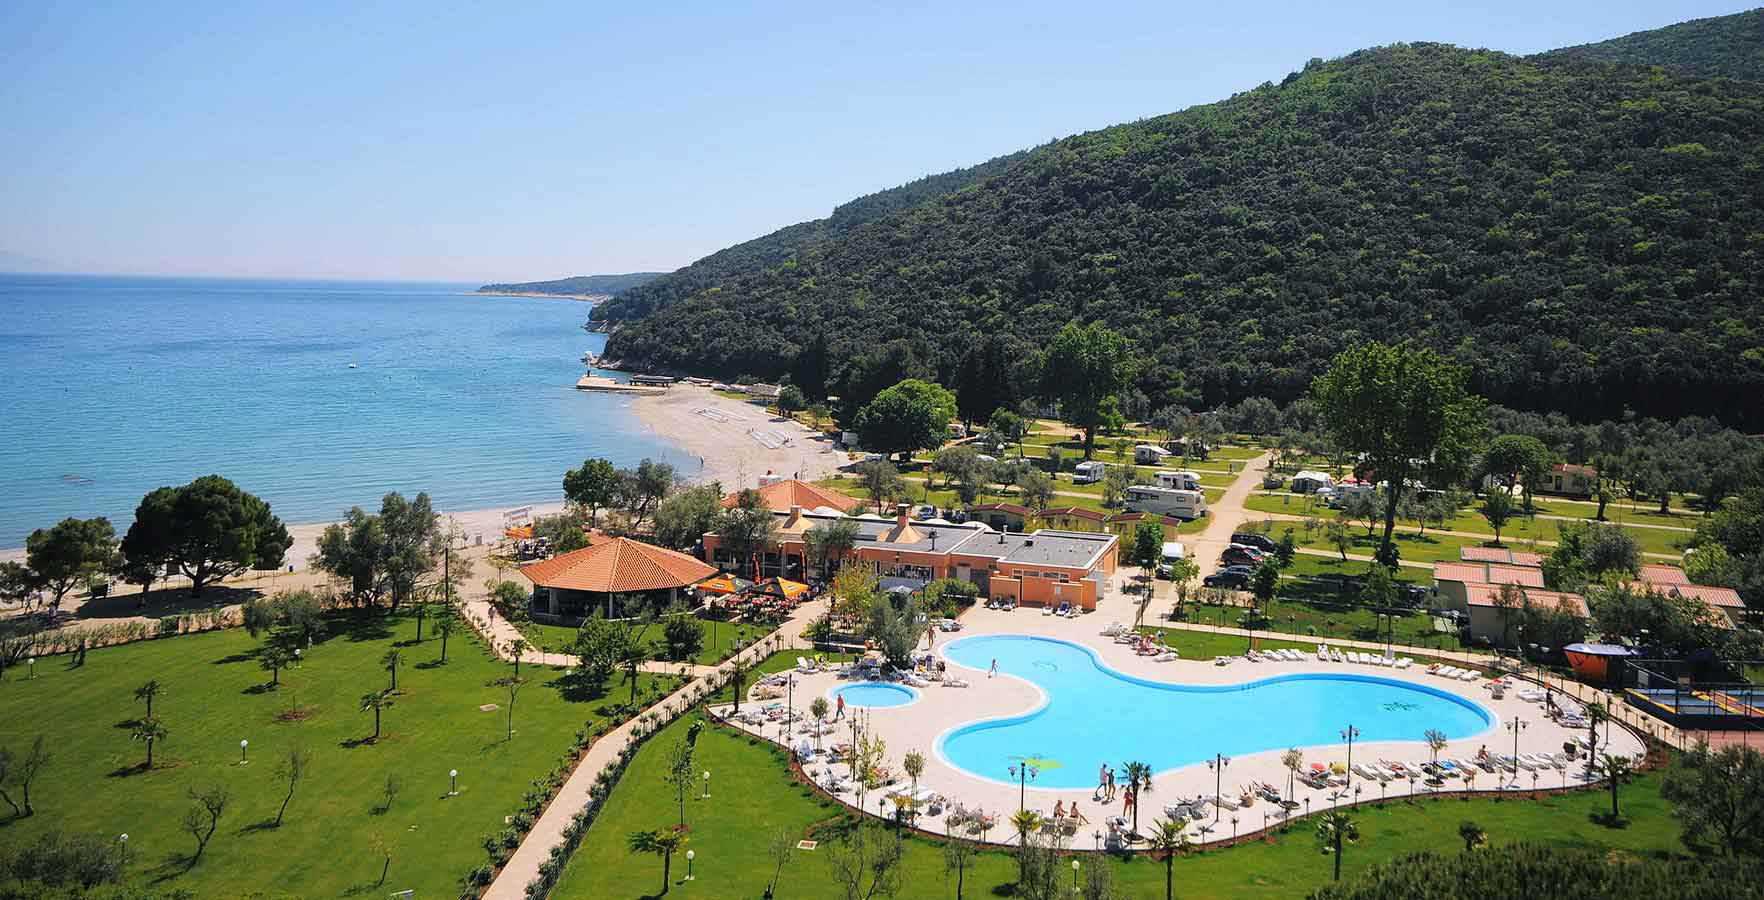 Camping oliva rabac croatian camping union croatian Campsites in poole with swimming pool